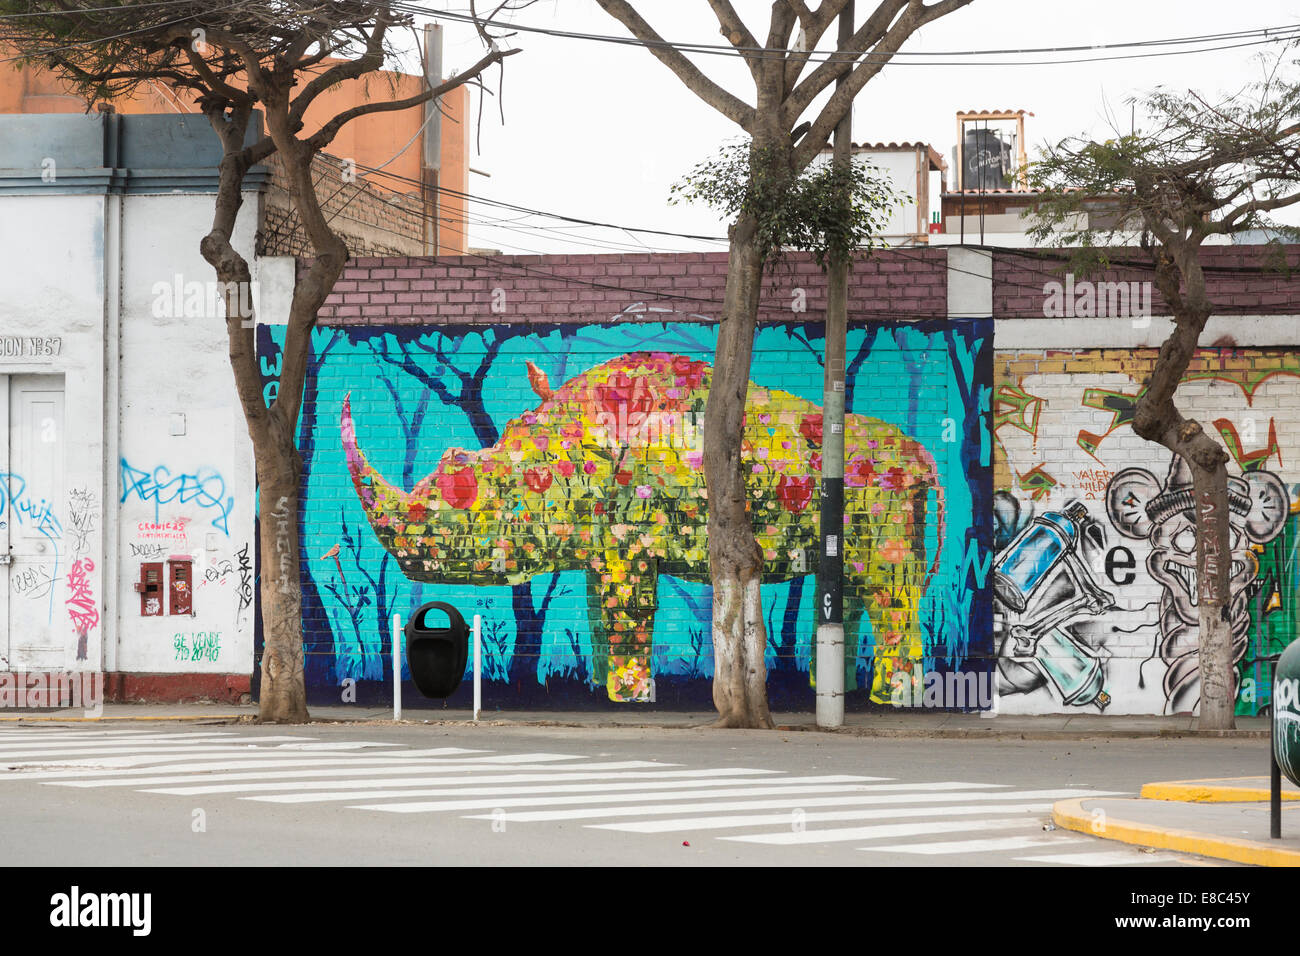 Graffiti wall painting - Colourful Graffiti Wall Painting Of A Rhinoceros In A Street In Barranco Lima Peru